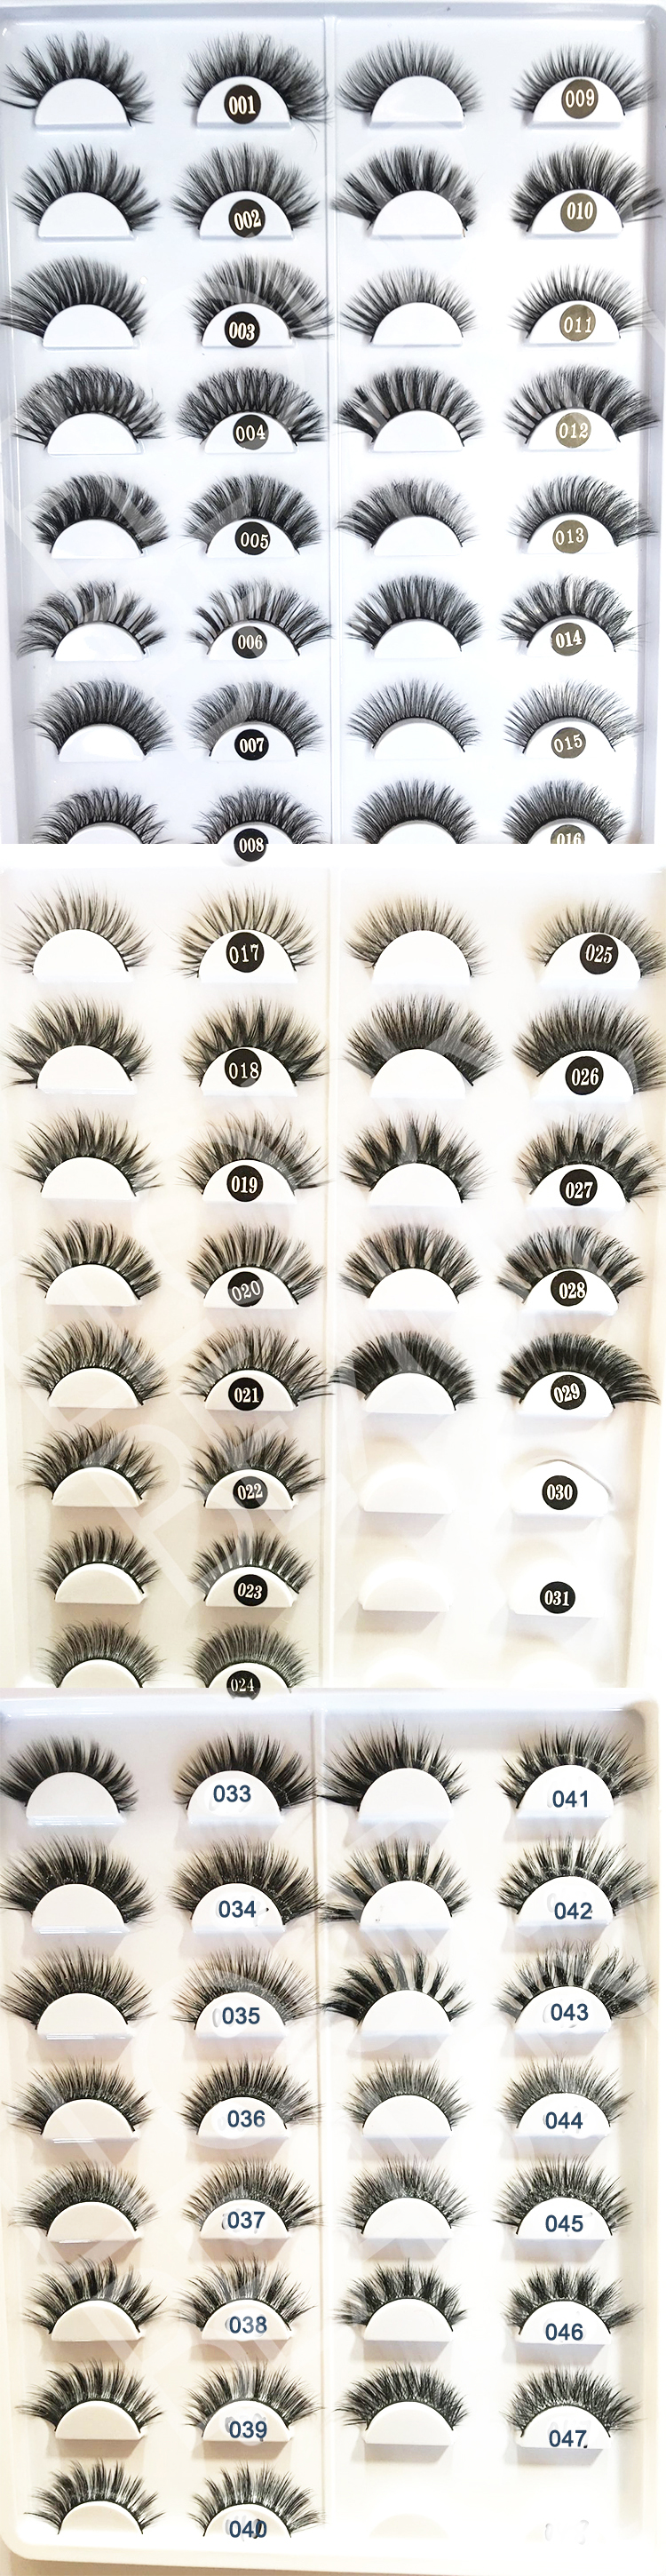 hundreds styles of 3d faux mink eyelashes wholesale.jpg